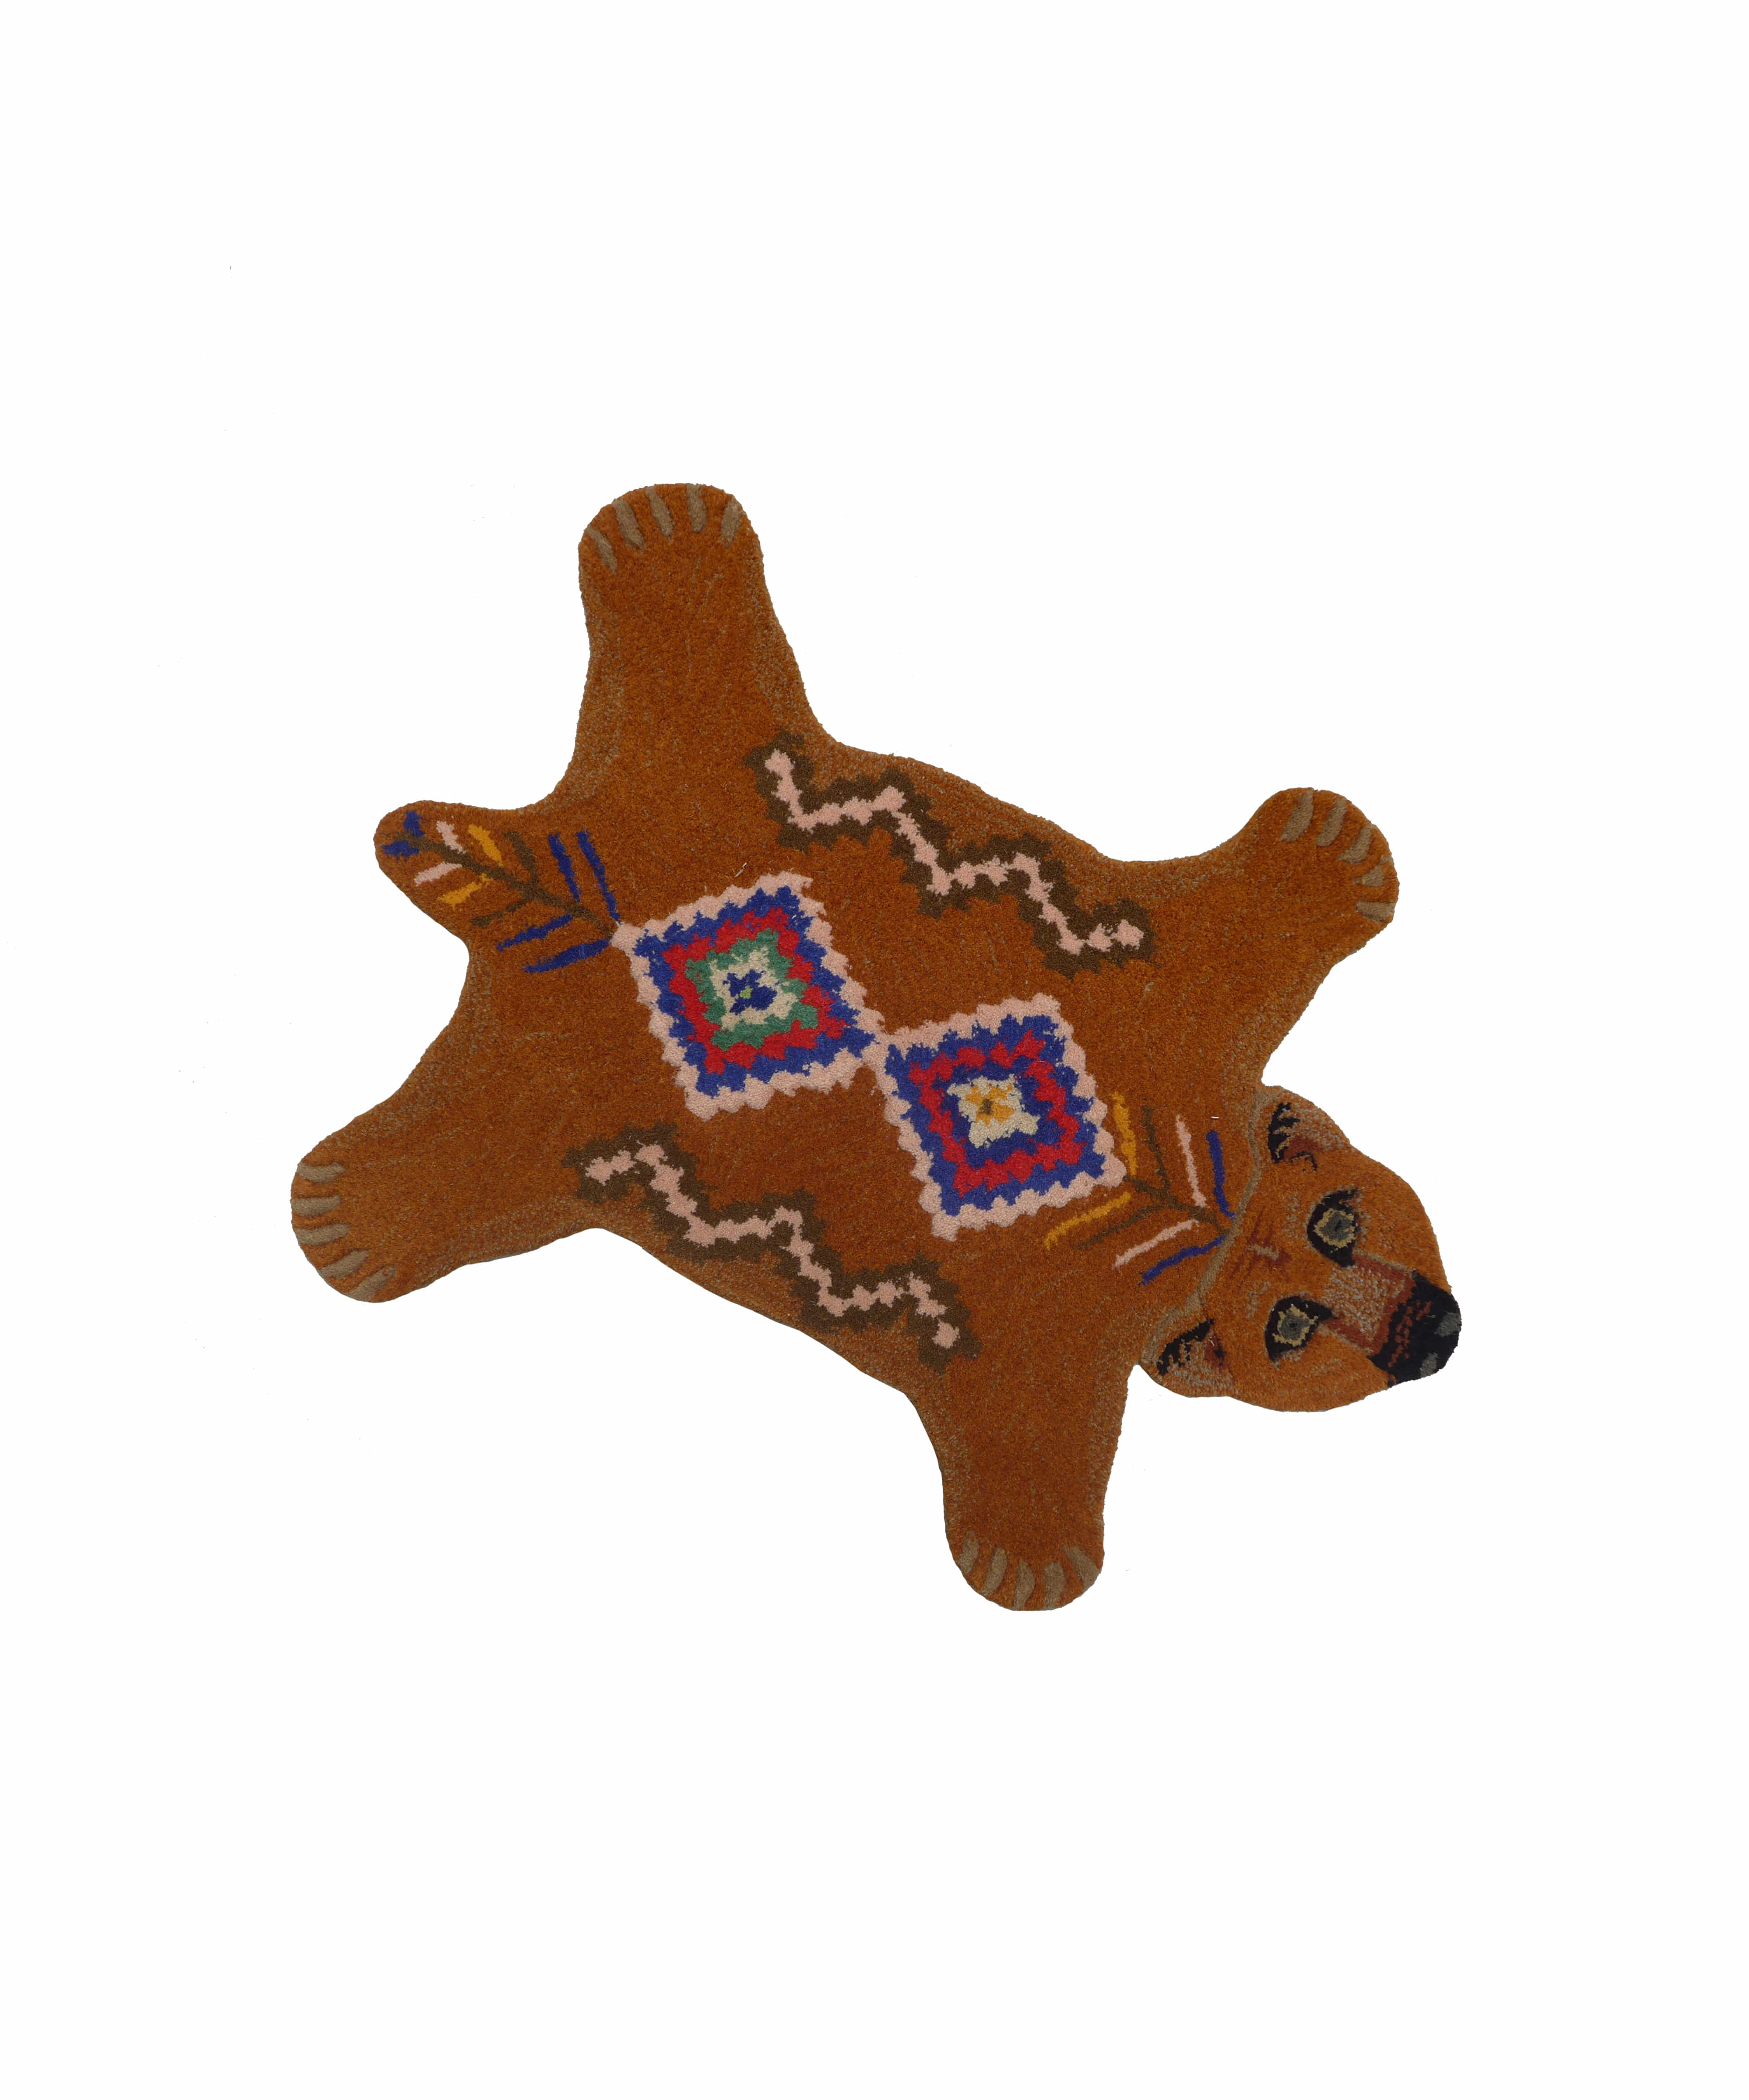 Erde-Brown Bear Rug